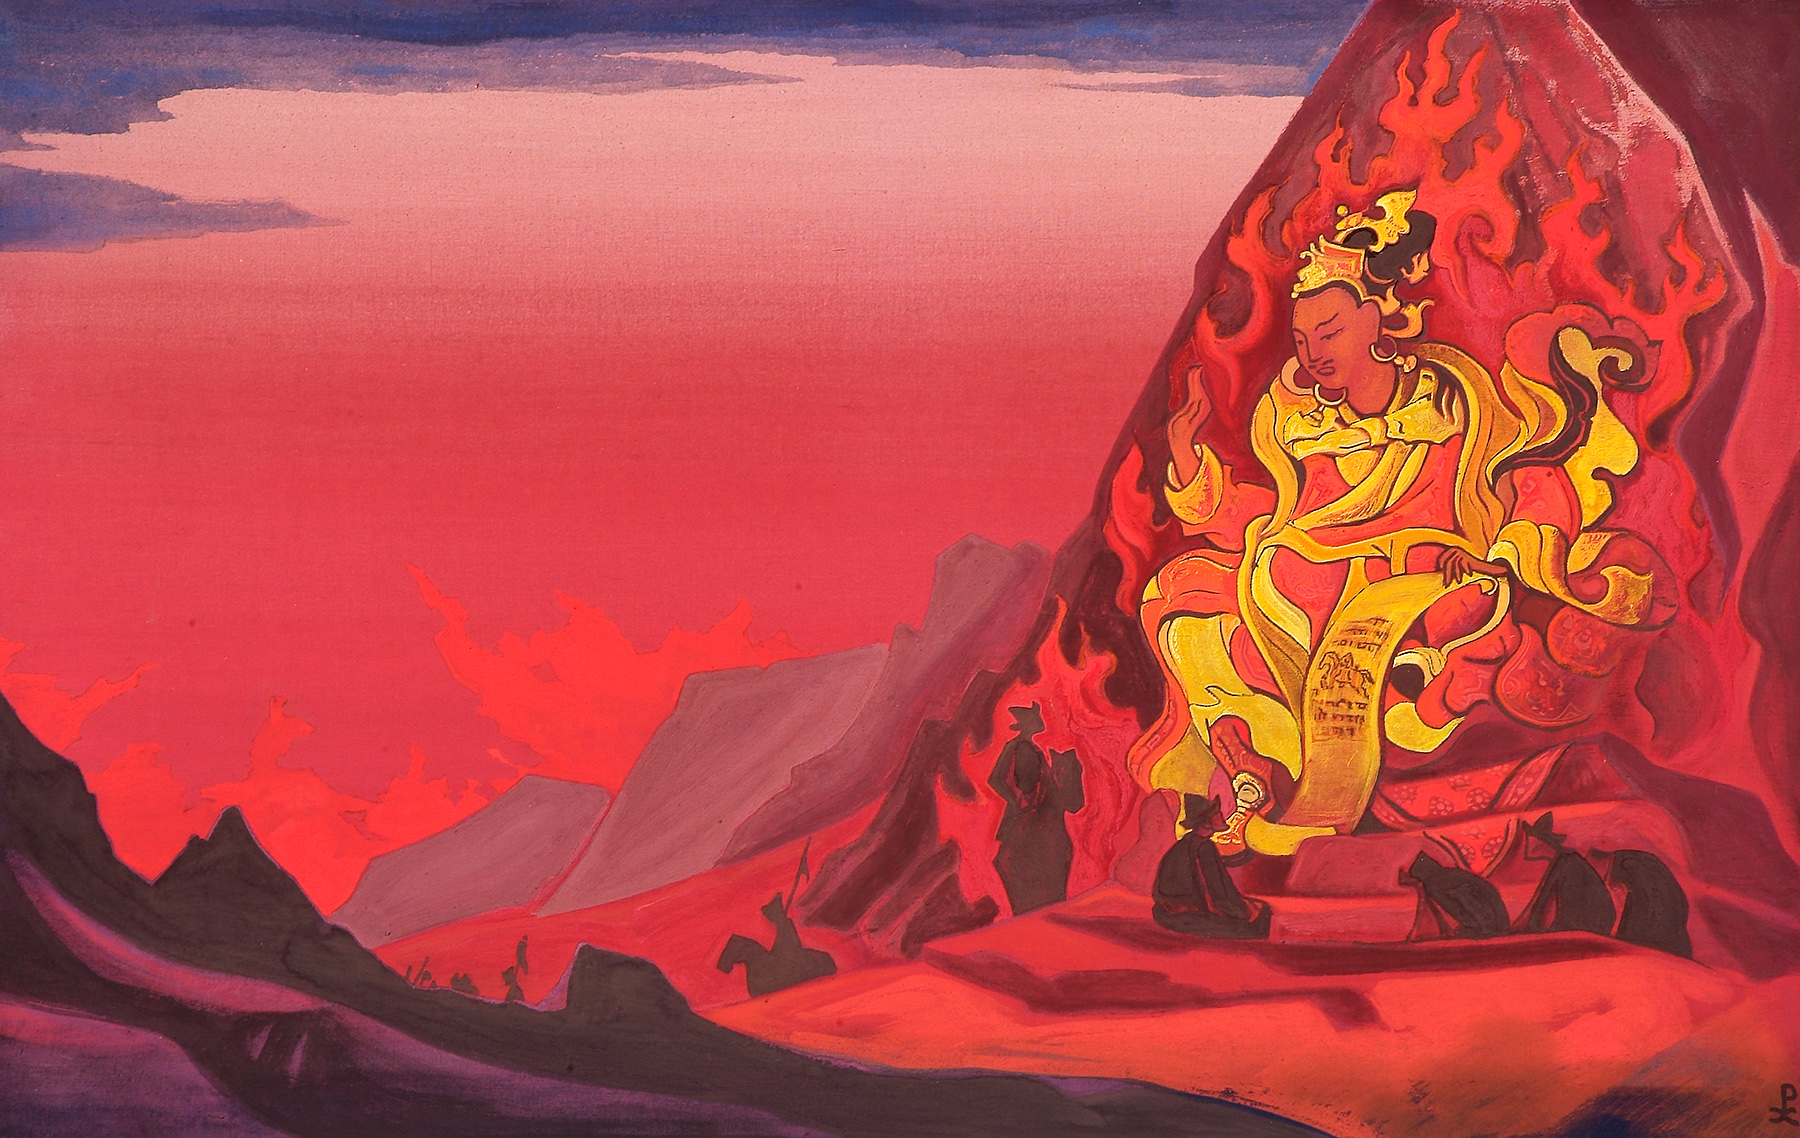 order-of-rigden-jyepo-by-nicholas-roerich